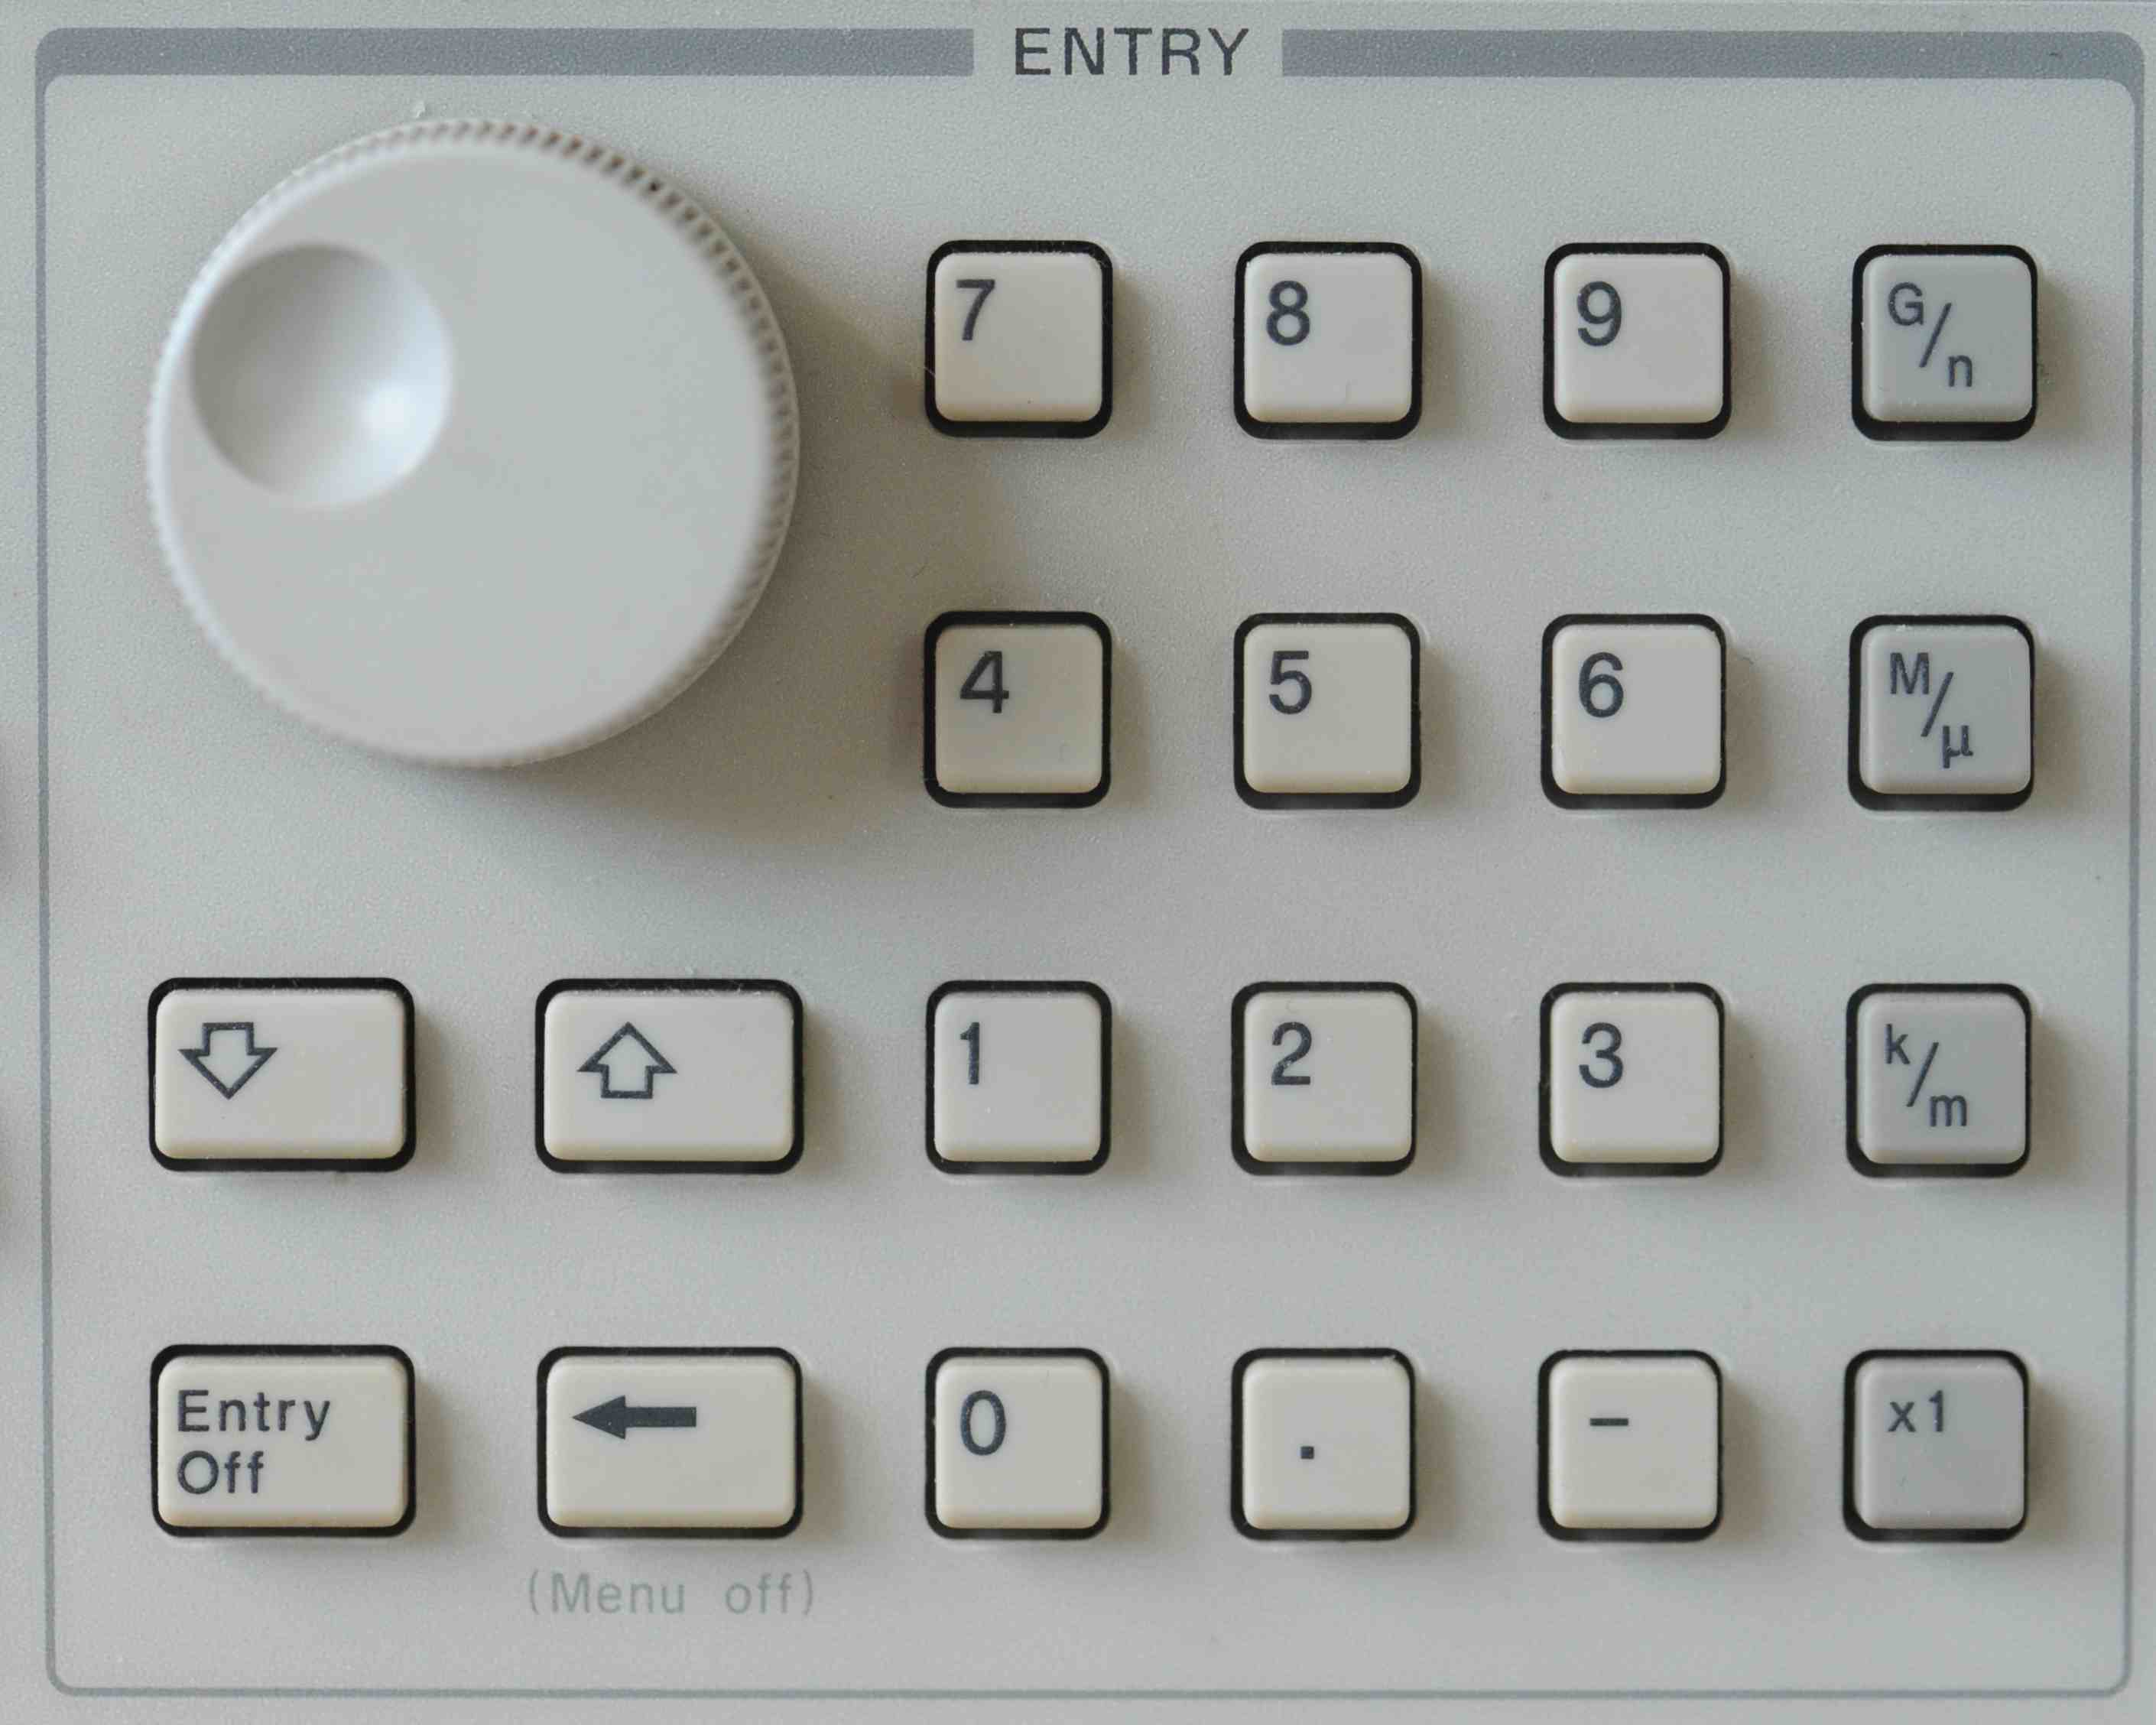 Use rotary know, or up/down arrow keys